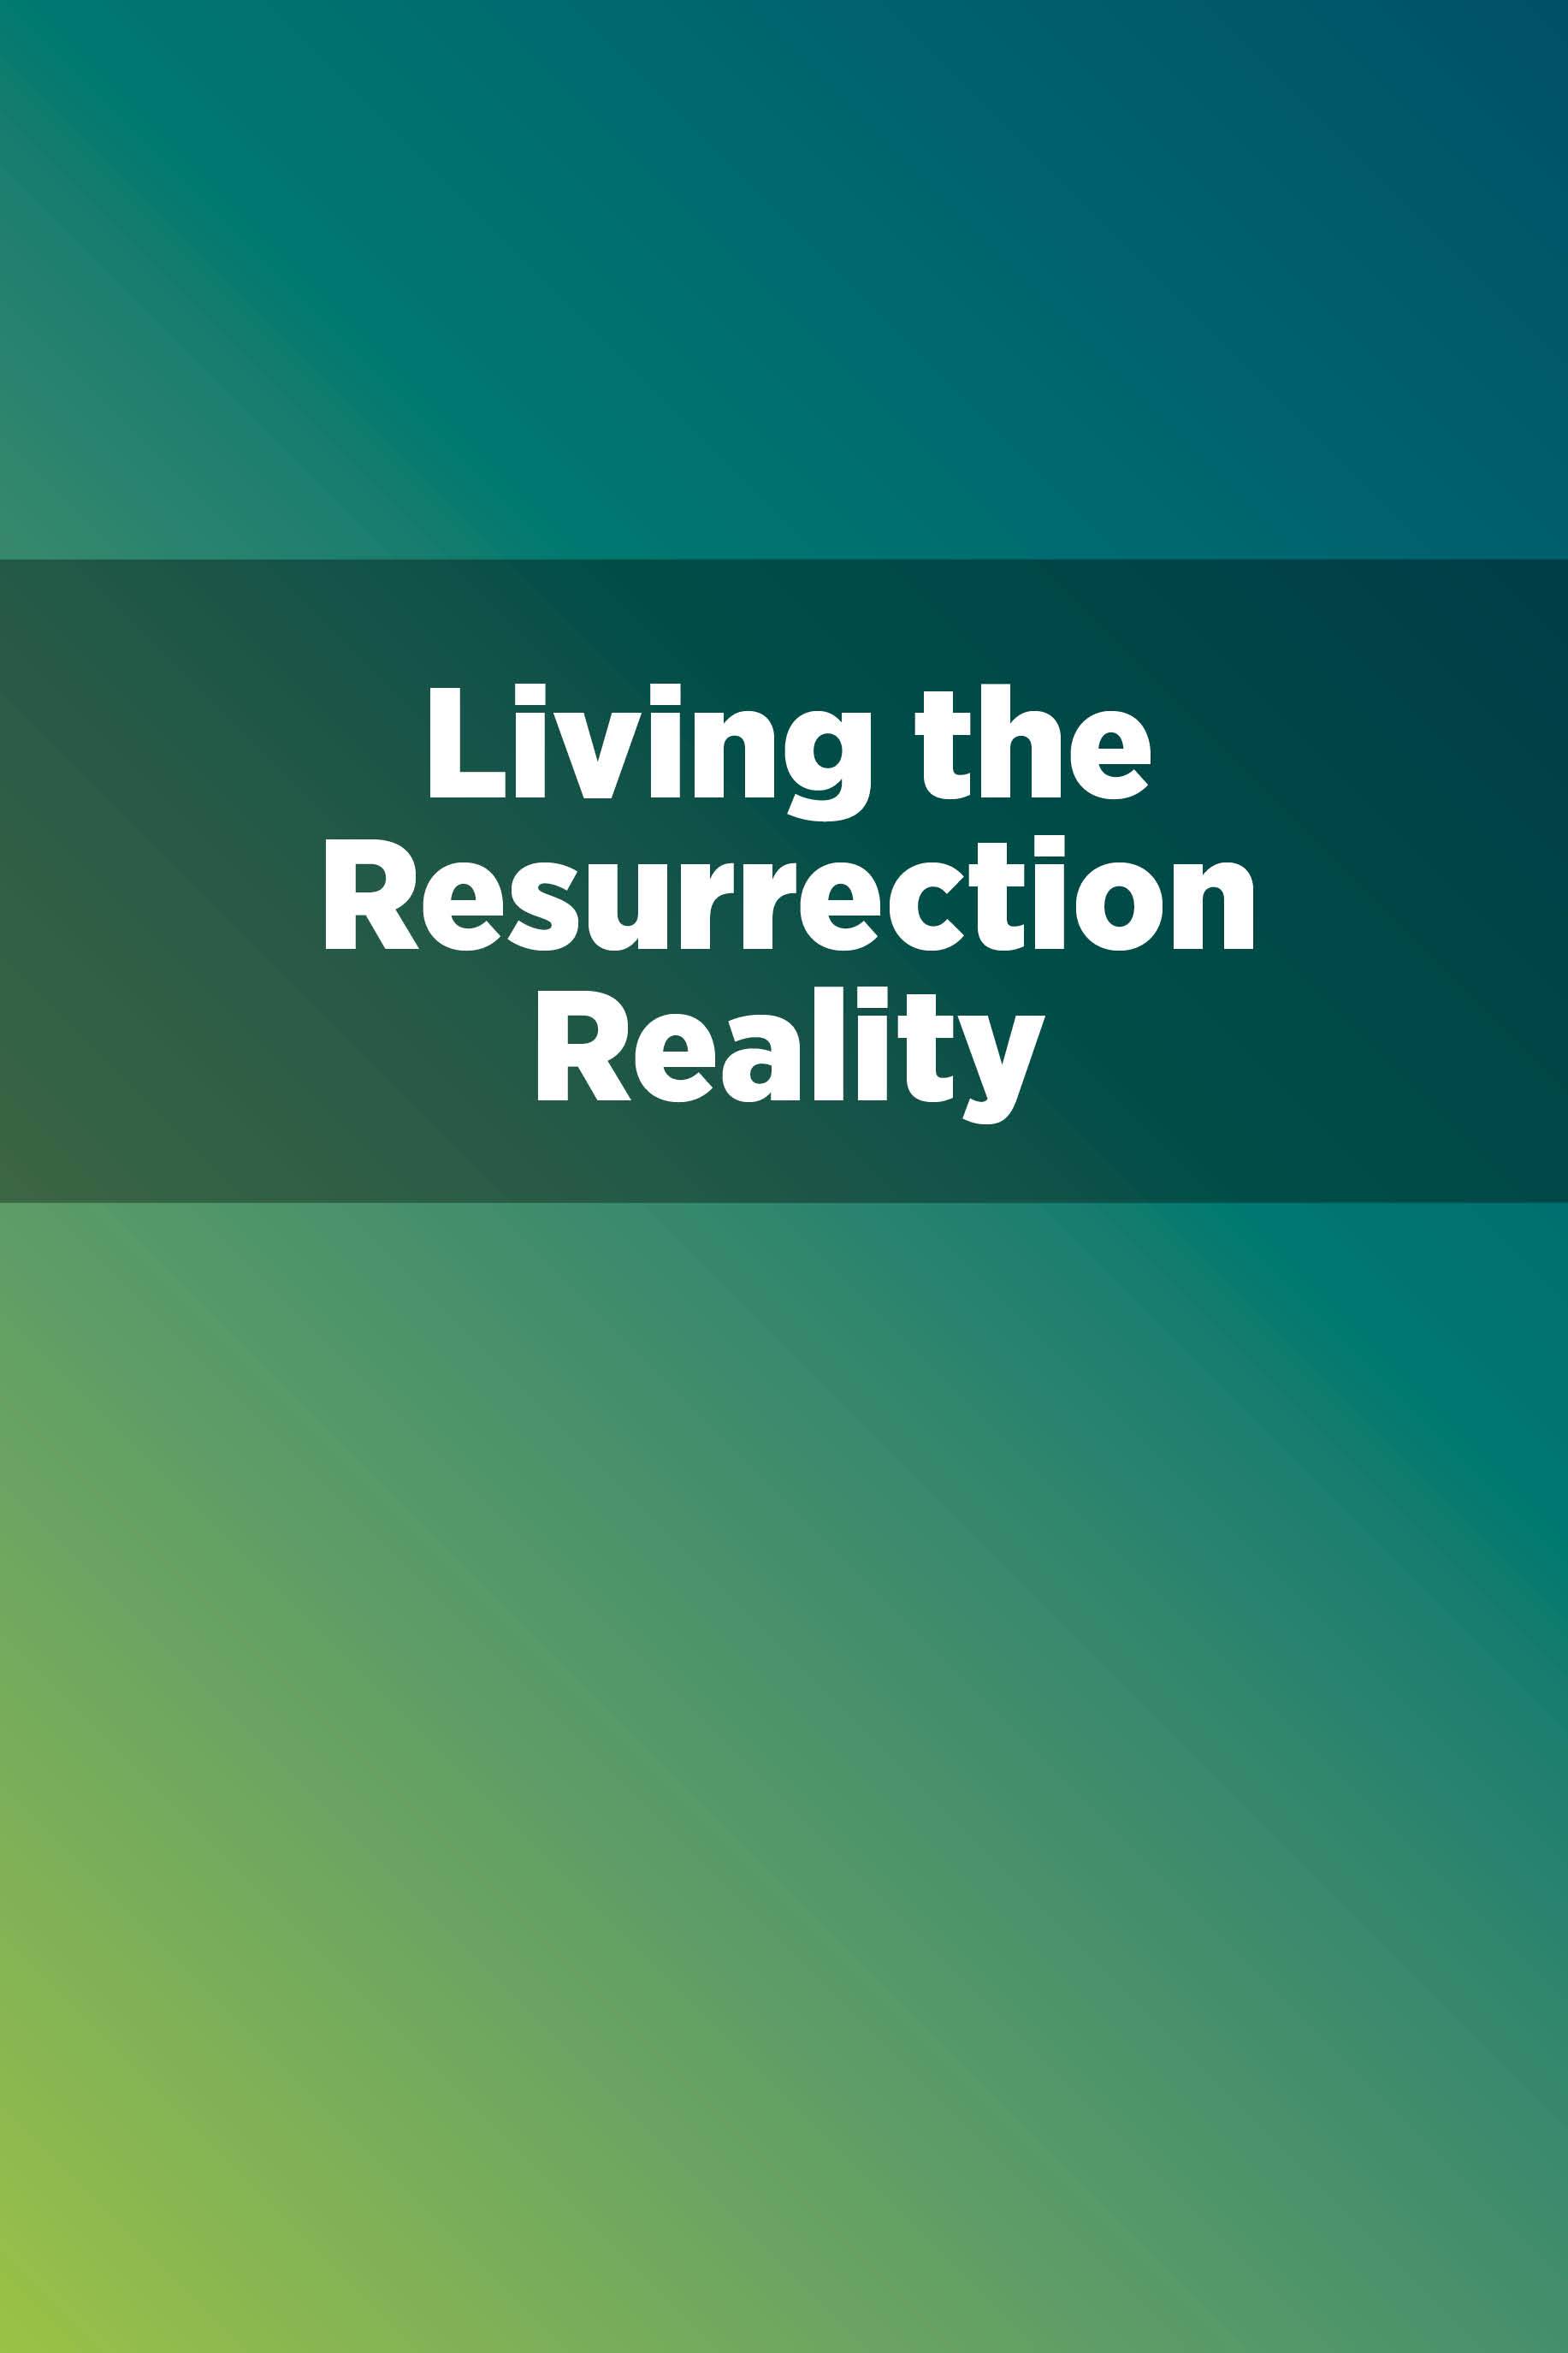 Living the Resurrection Reality